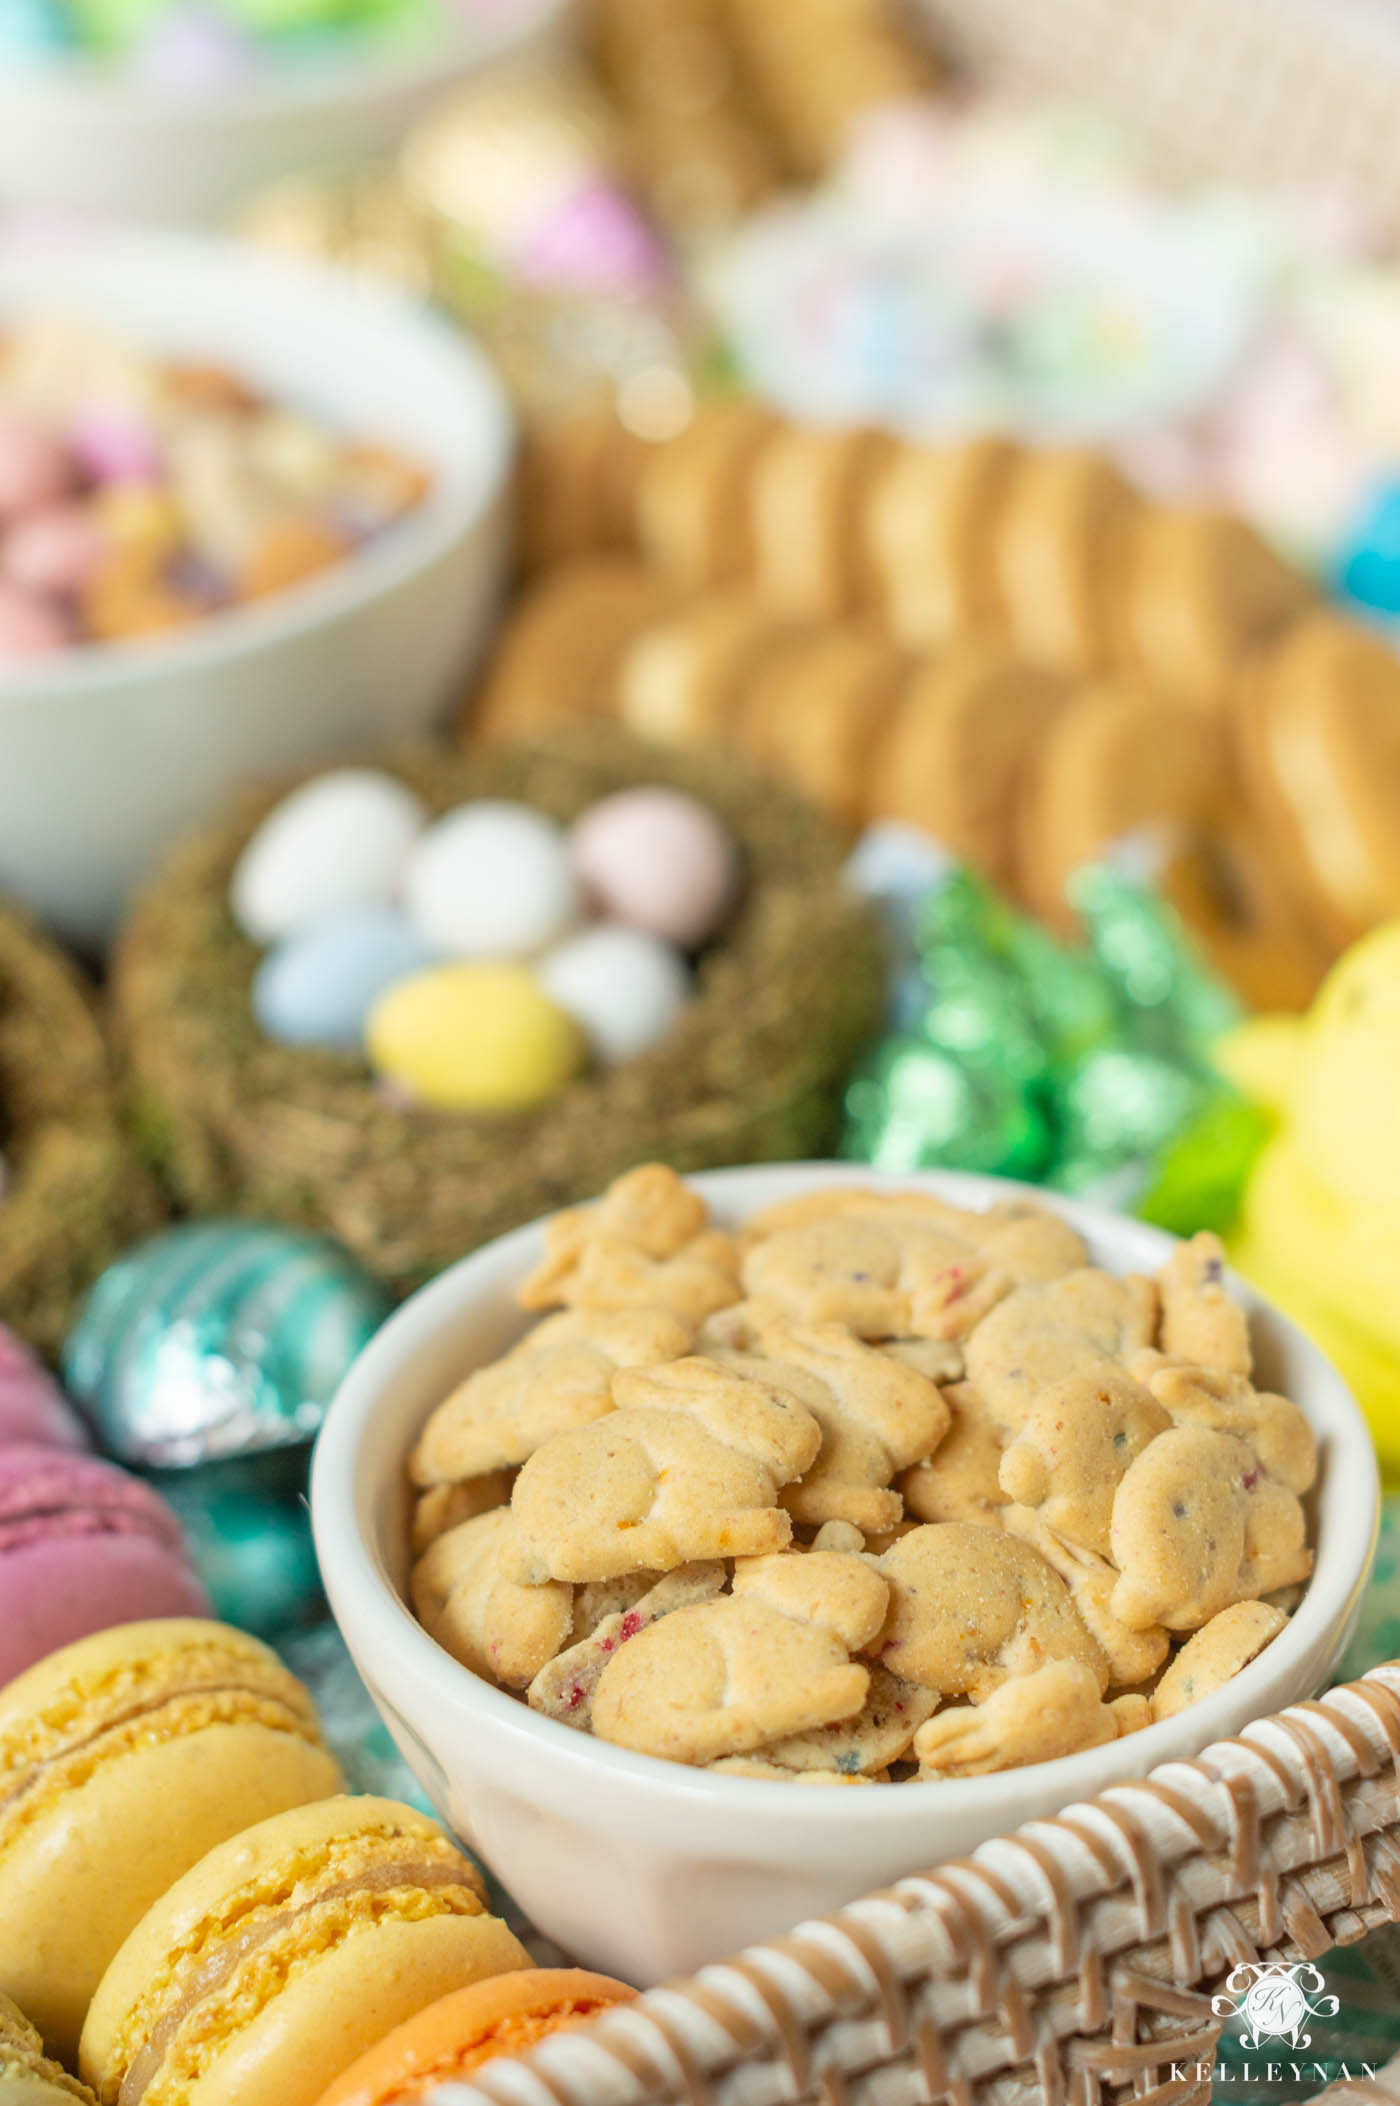 Easter Candy Platter and Display